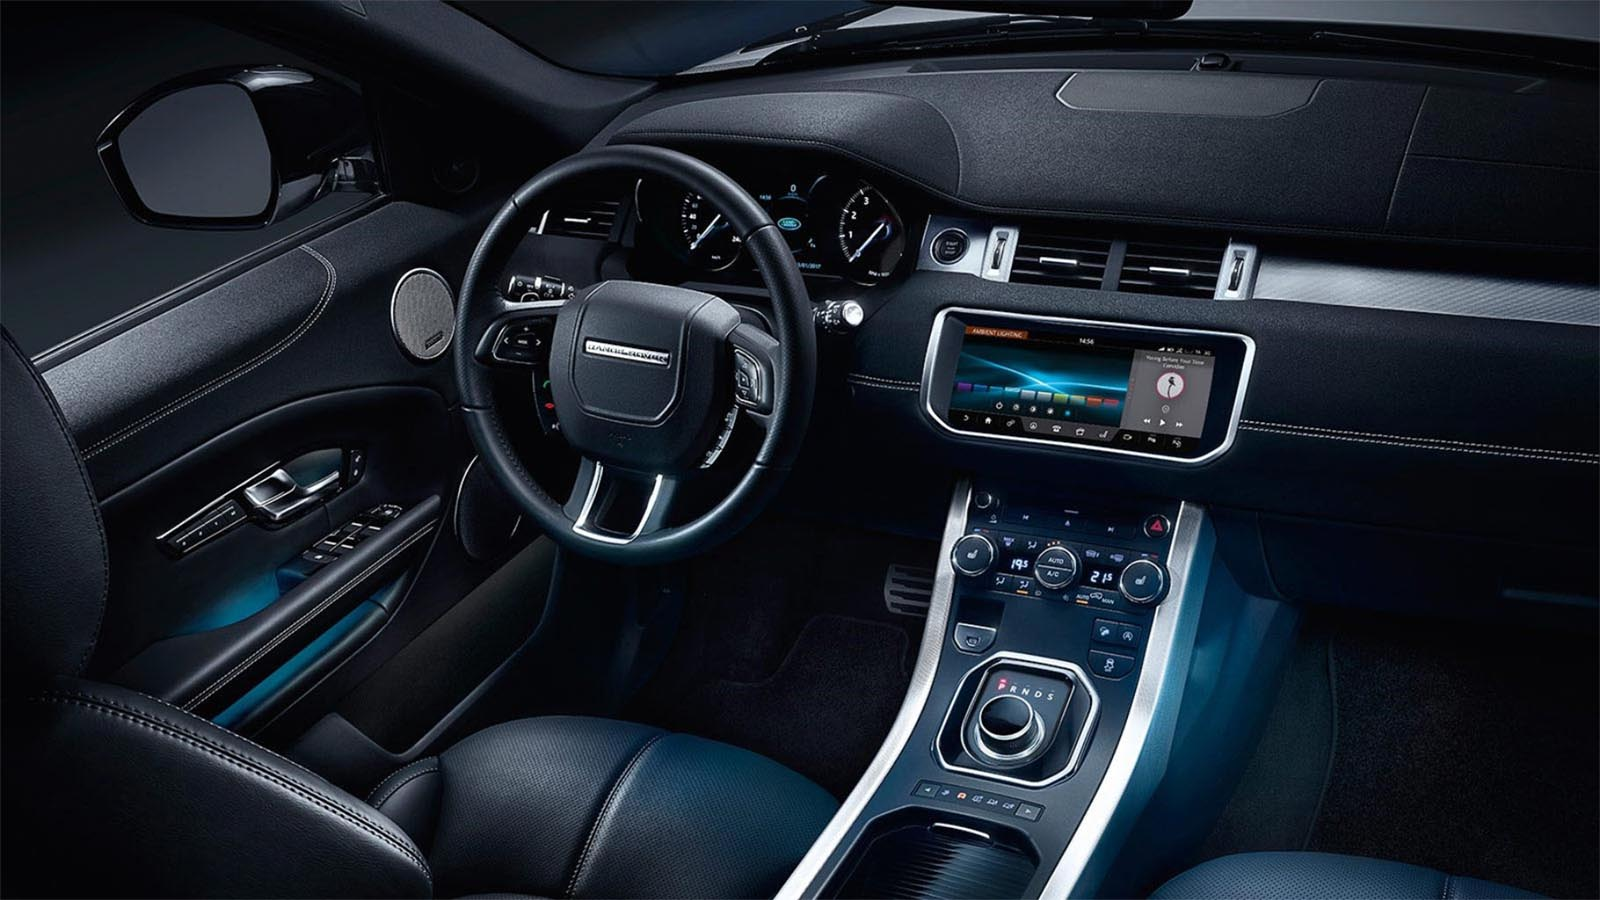 Range Rover Evoque - Sophisticated leather interior and controls